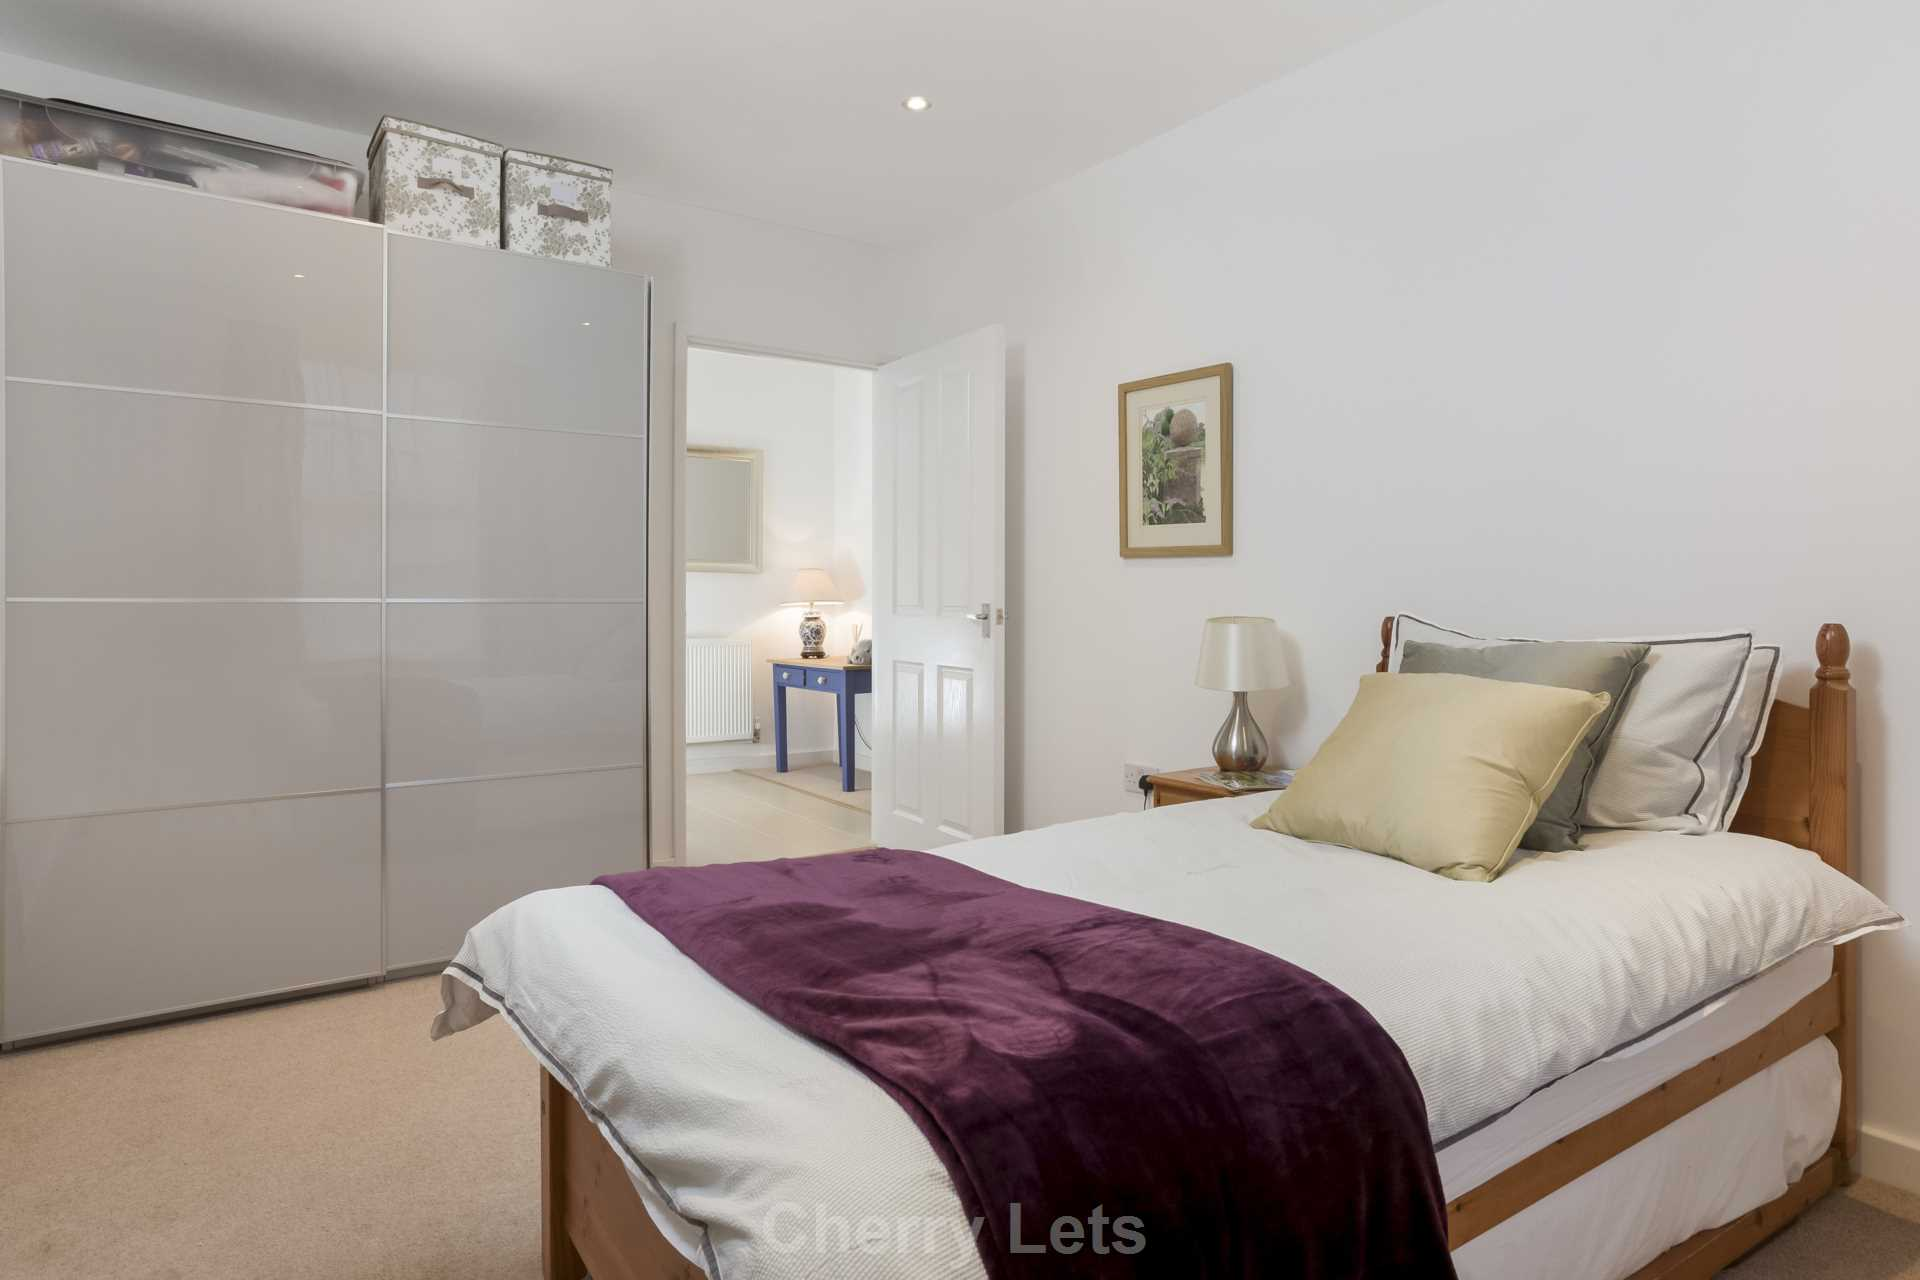 2 bed apartment to rent in Astrop Grange, Kings Sutton, OX17 9